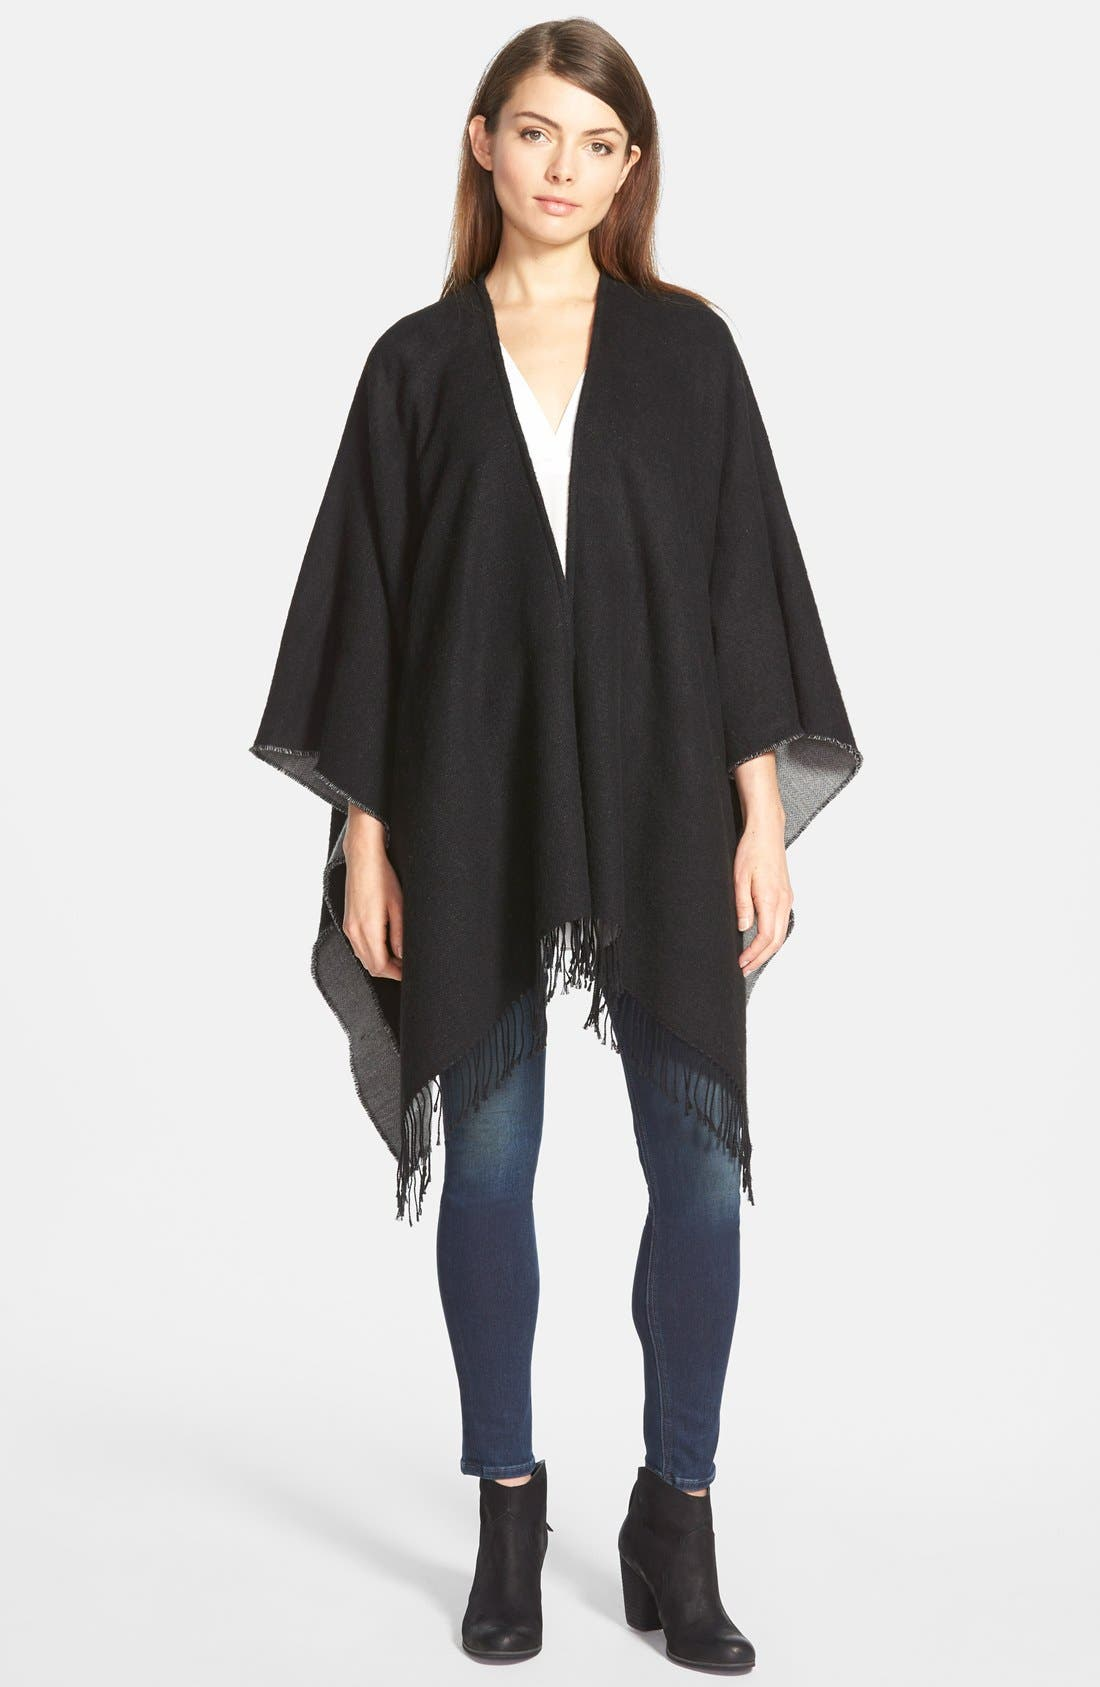 Alternate Image 1 Selected - Nordstrom Reversible Cape with Fringe